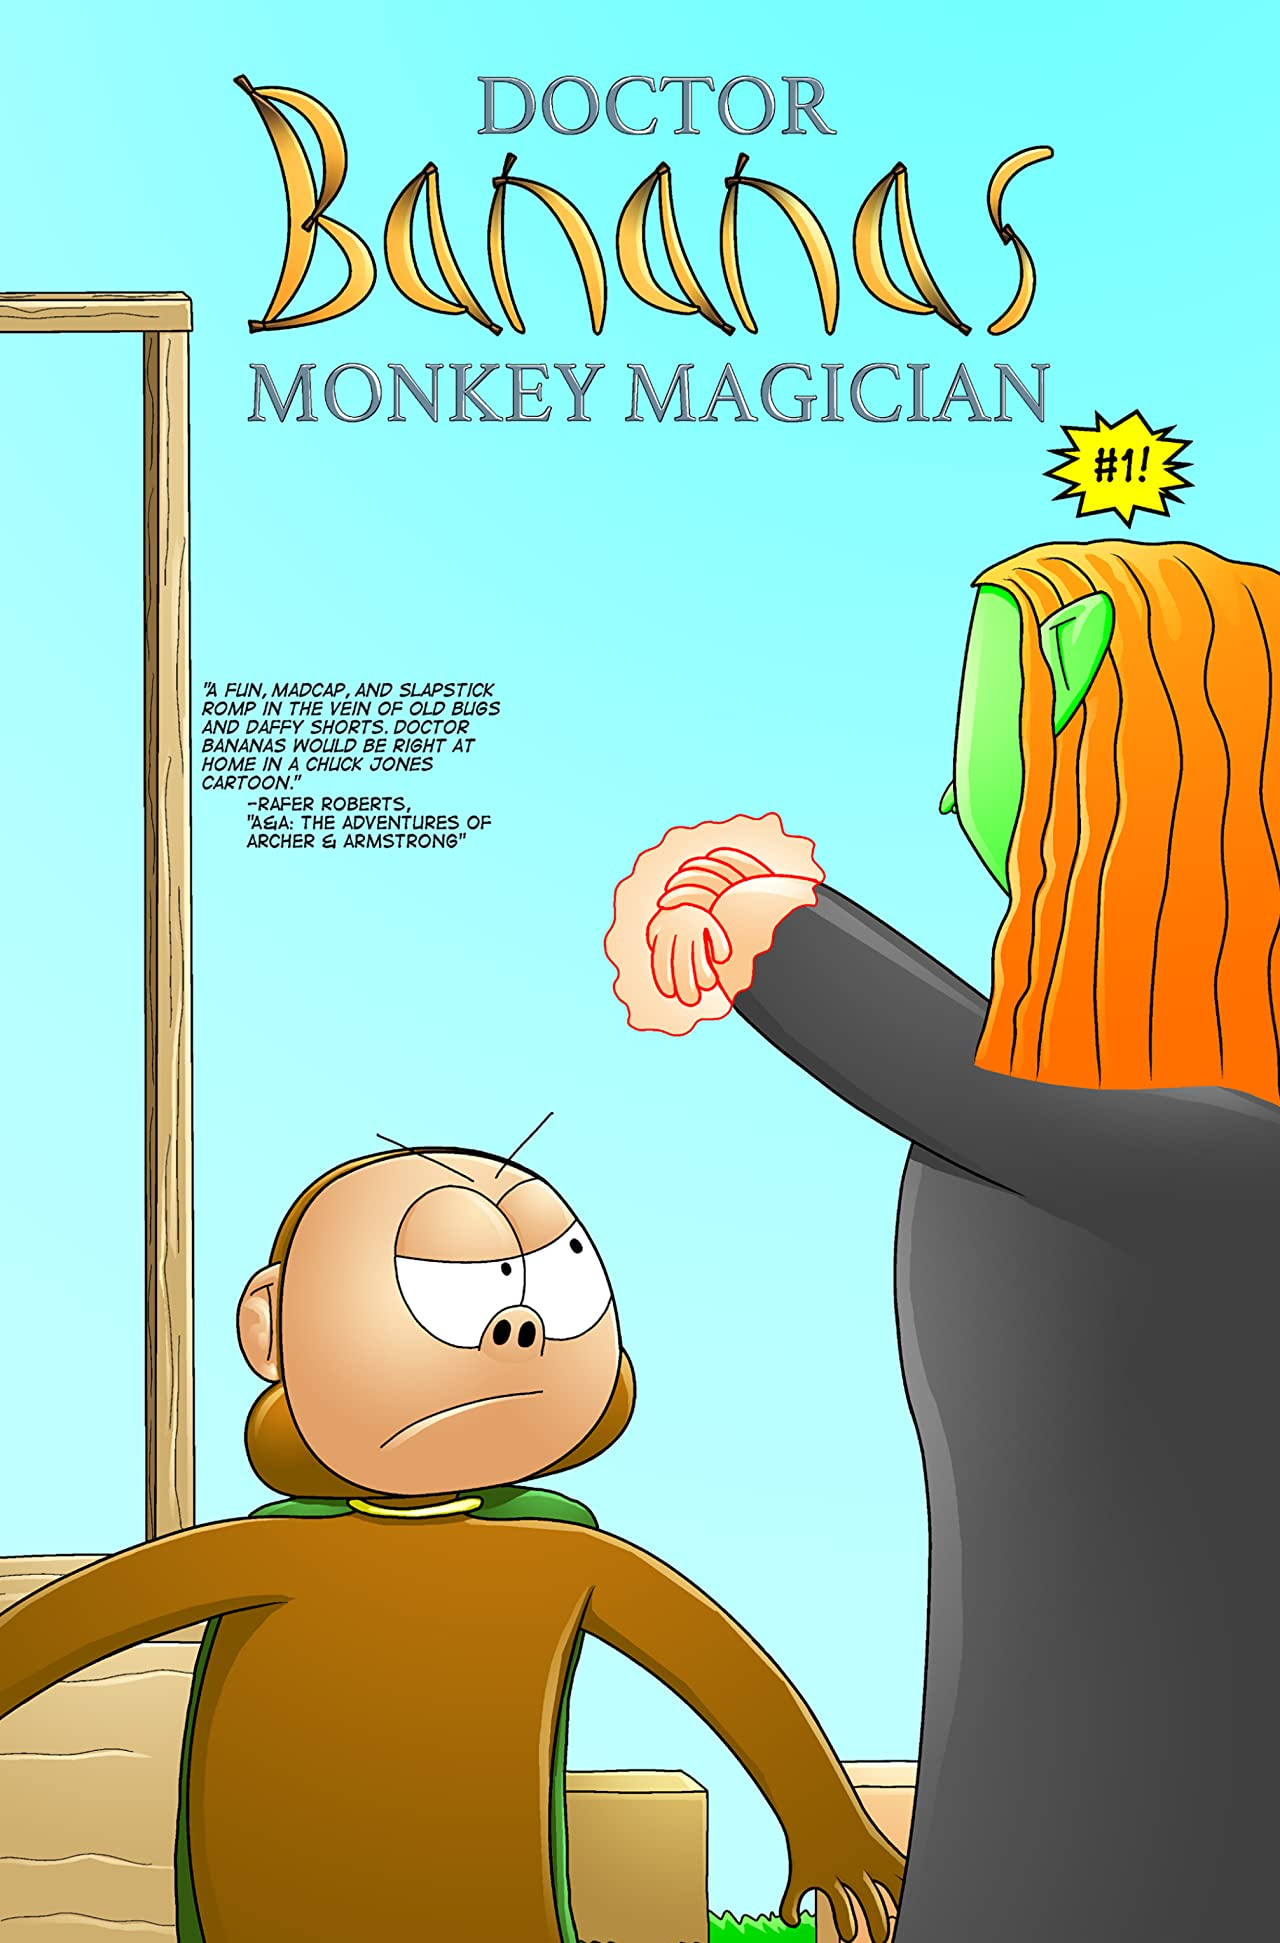 Doctor Bananas: Monkey Magician #1